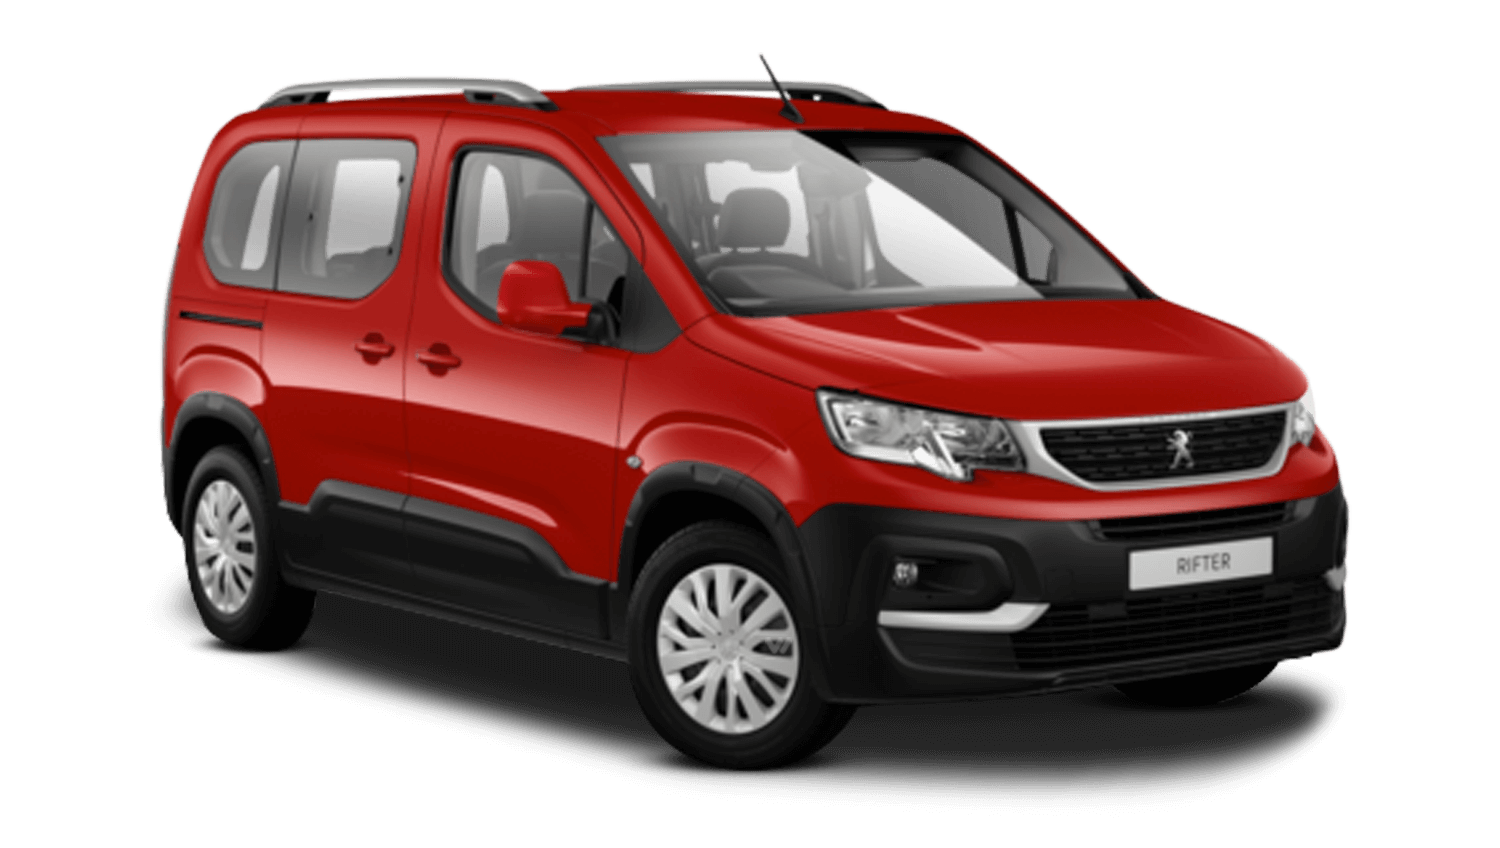 Ardent Red Peugeot Rifter